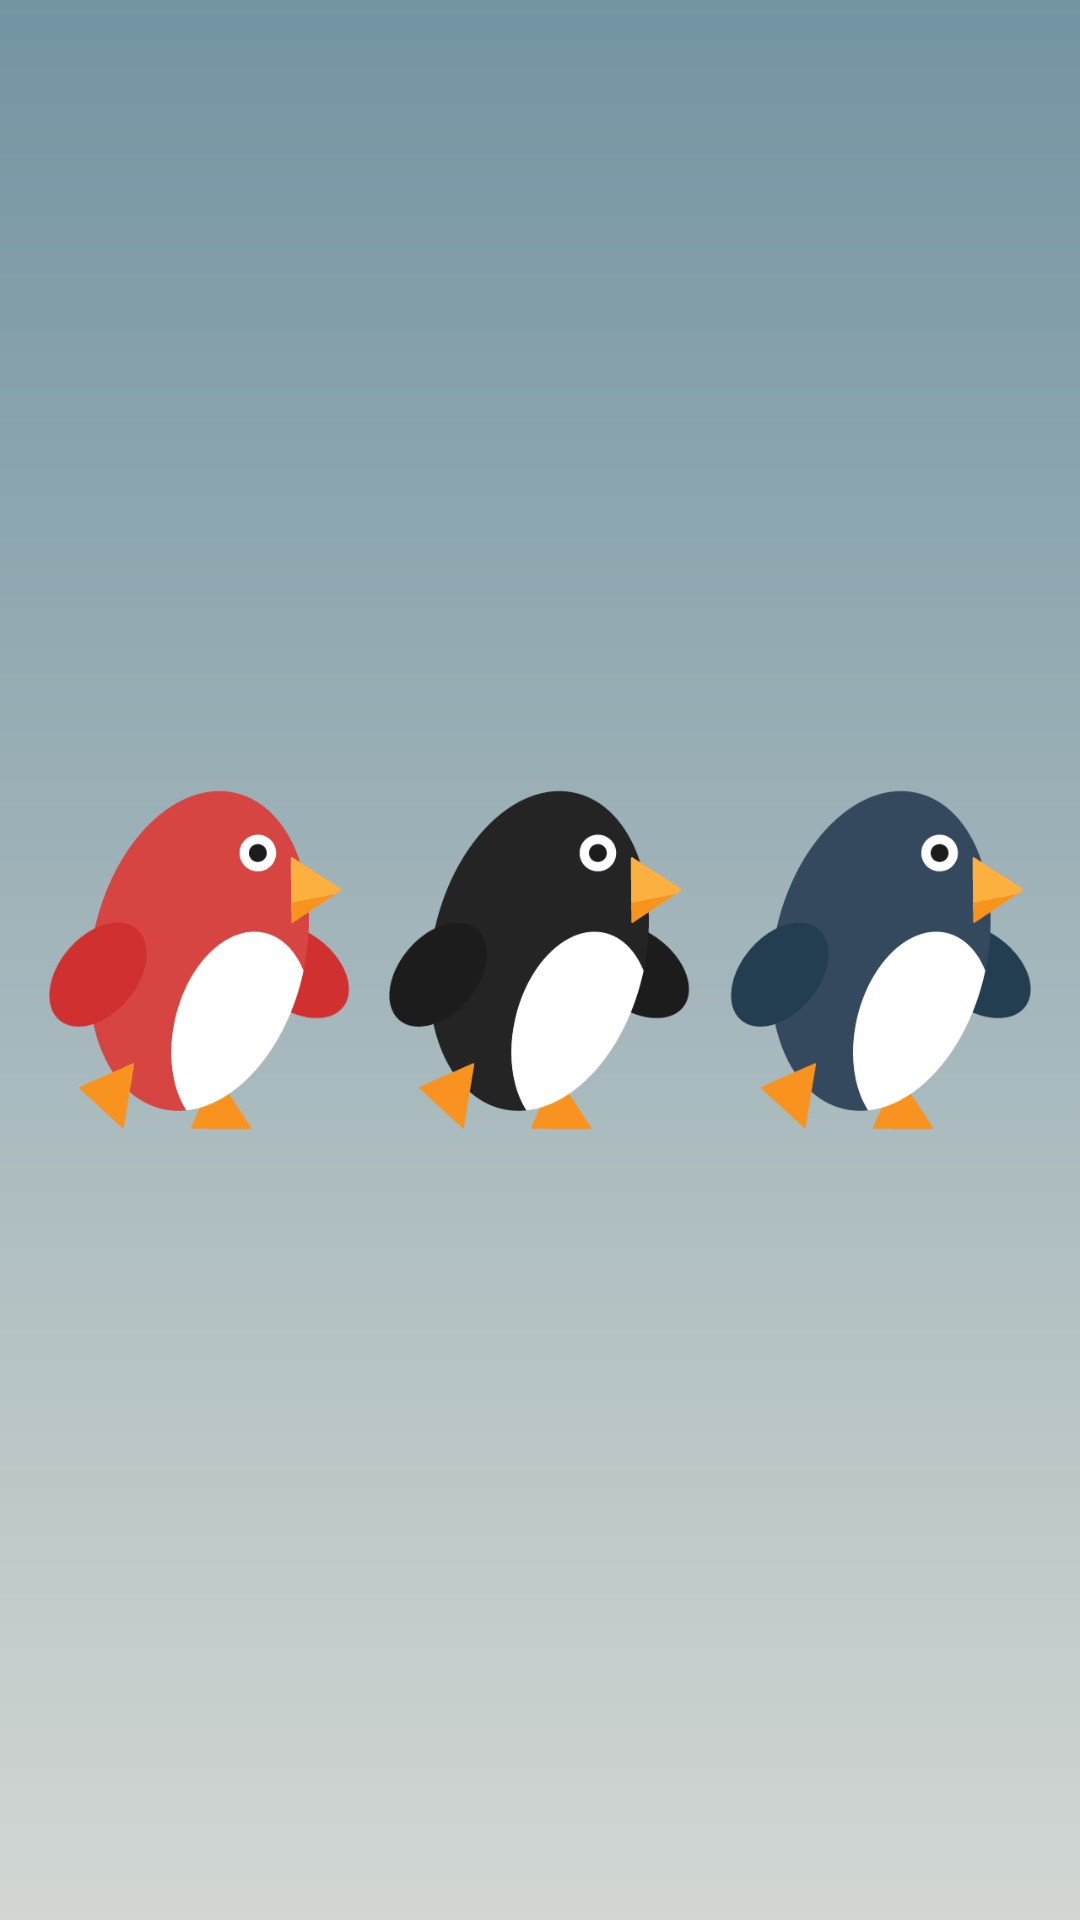 penguin run cartoon free game on android oxgadgets